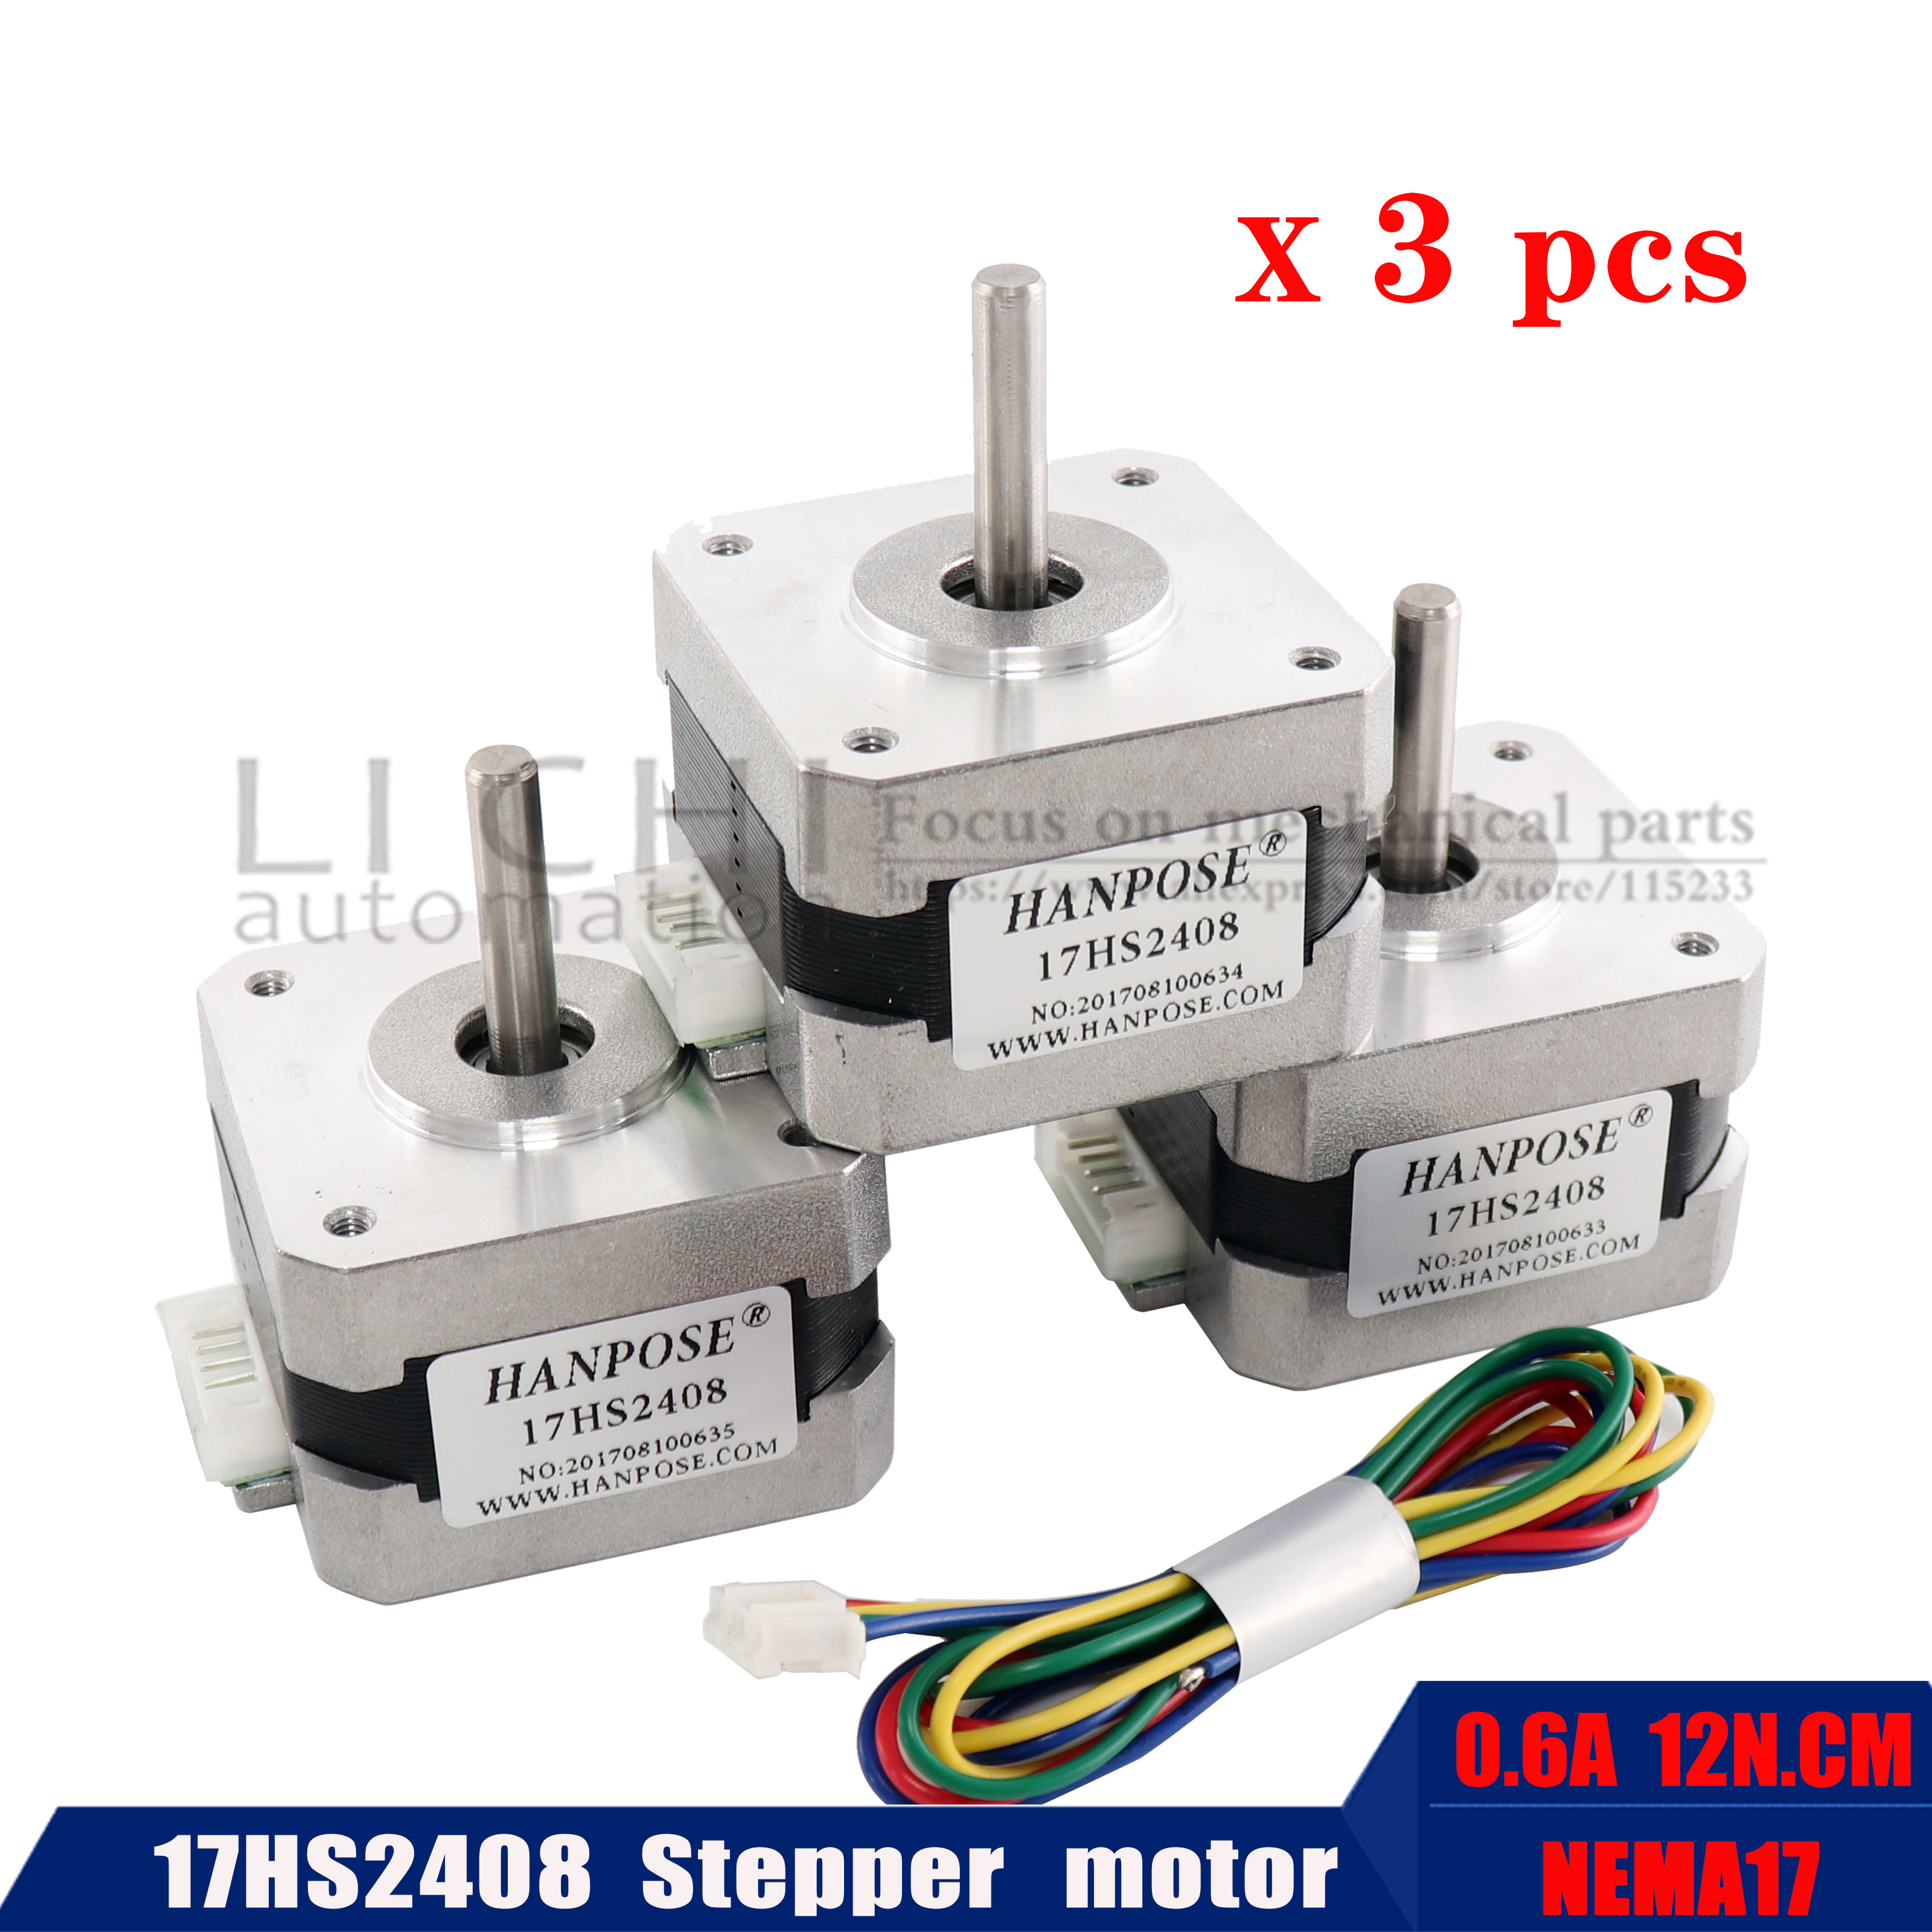 Best price and quality 3pcs / batch 17hs2408 4-wire NEMA 17 stepping motor 42 motor 0.6A 3D printer CNC